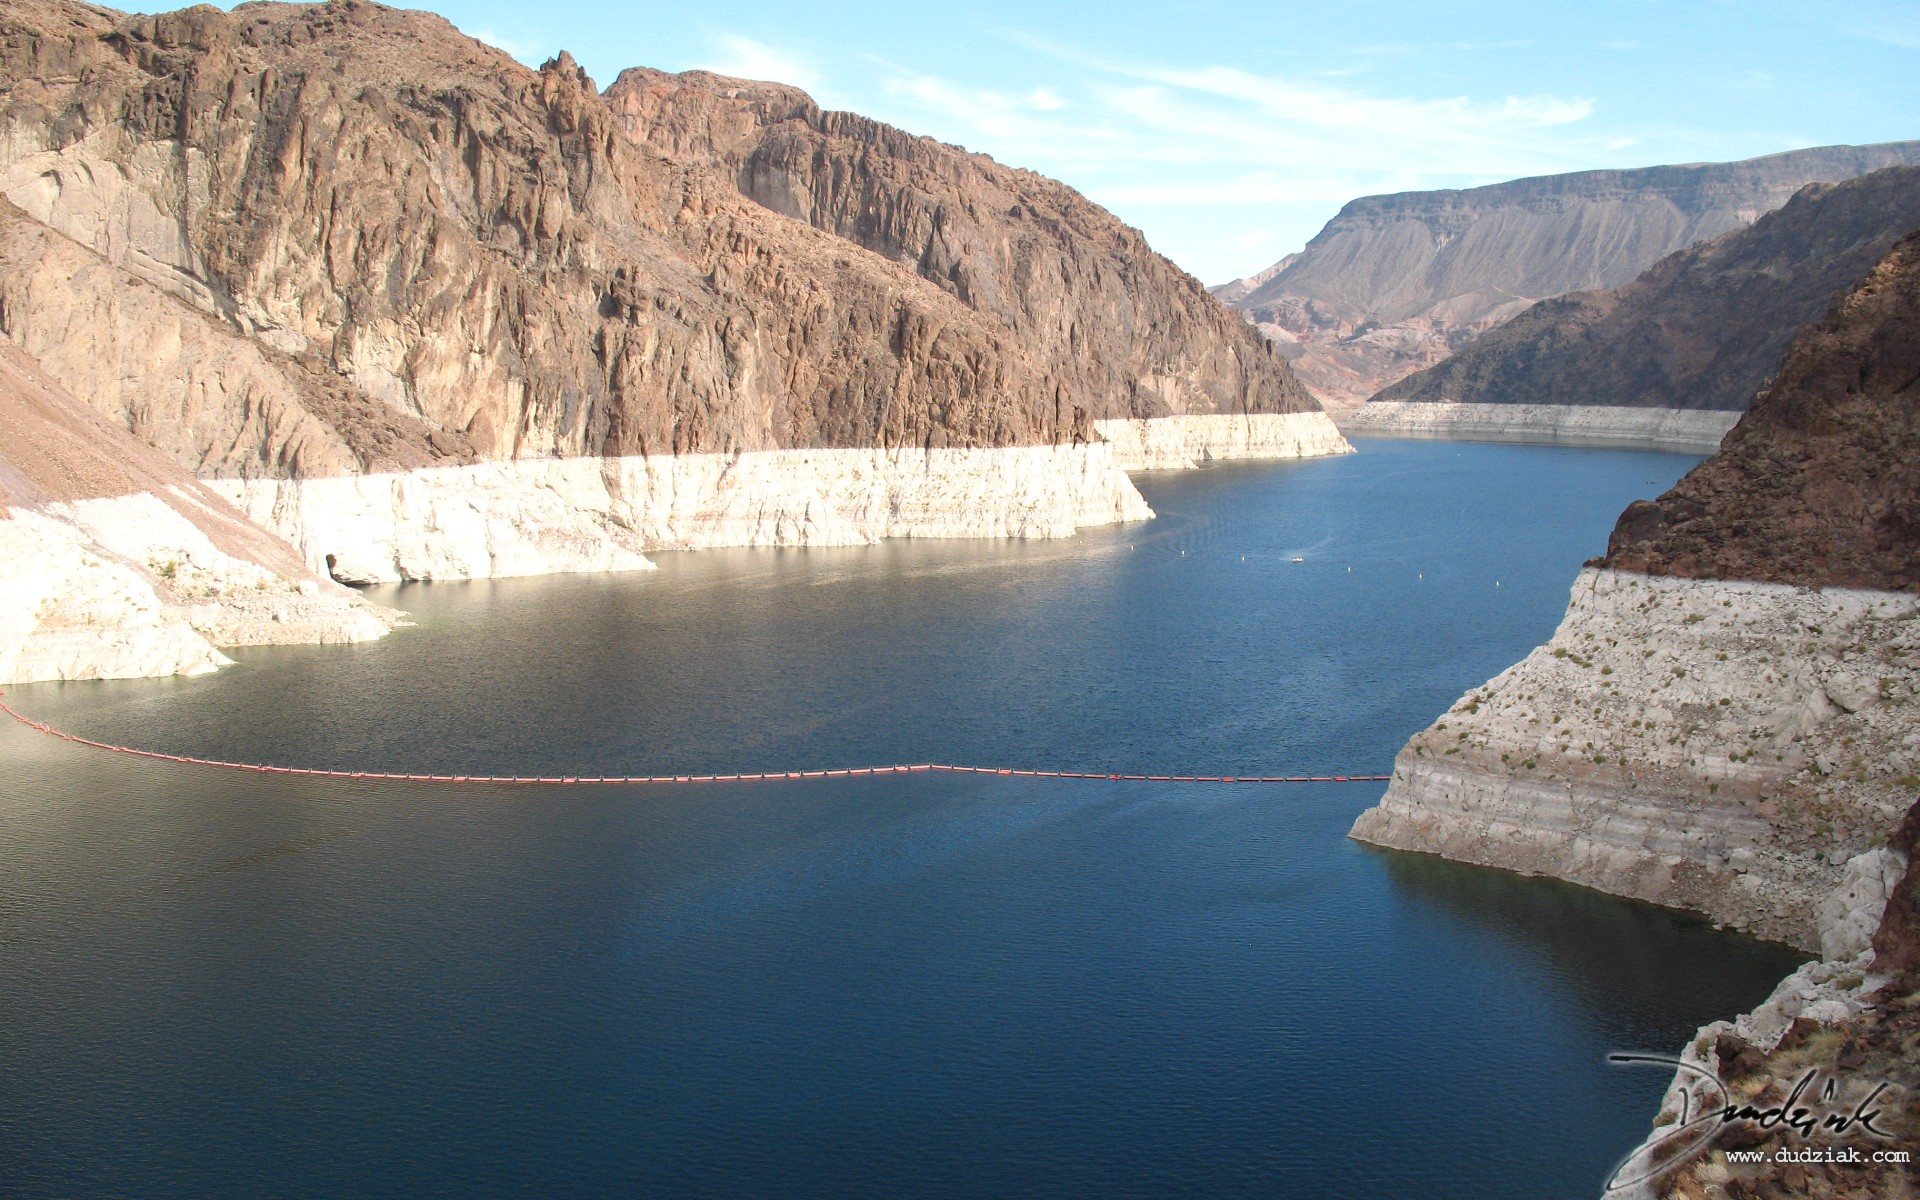 high water mark,  Nevada,  colorado river,  Lake Mead,  arizona,  waterline